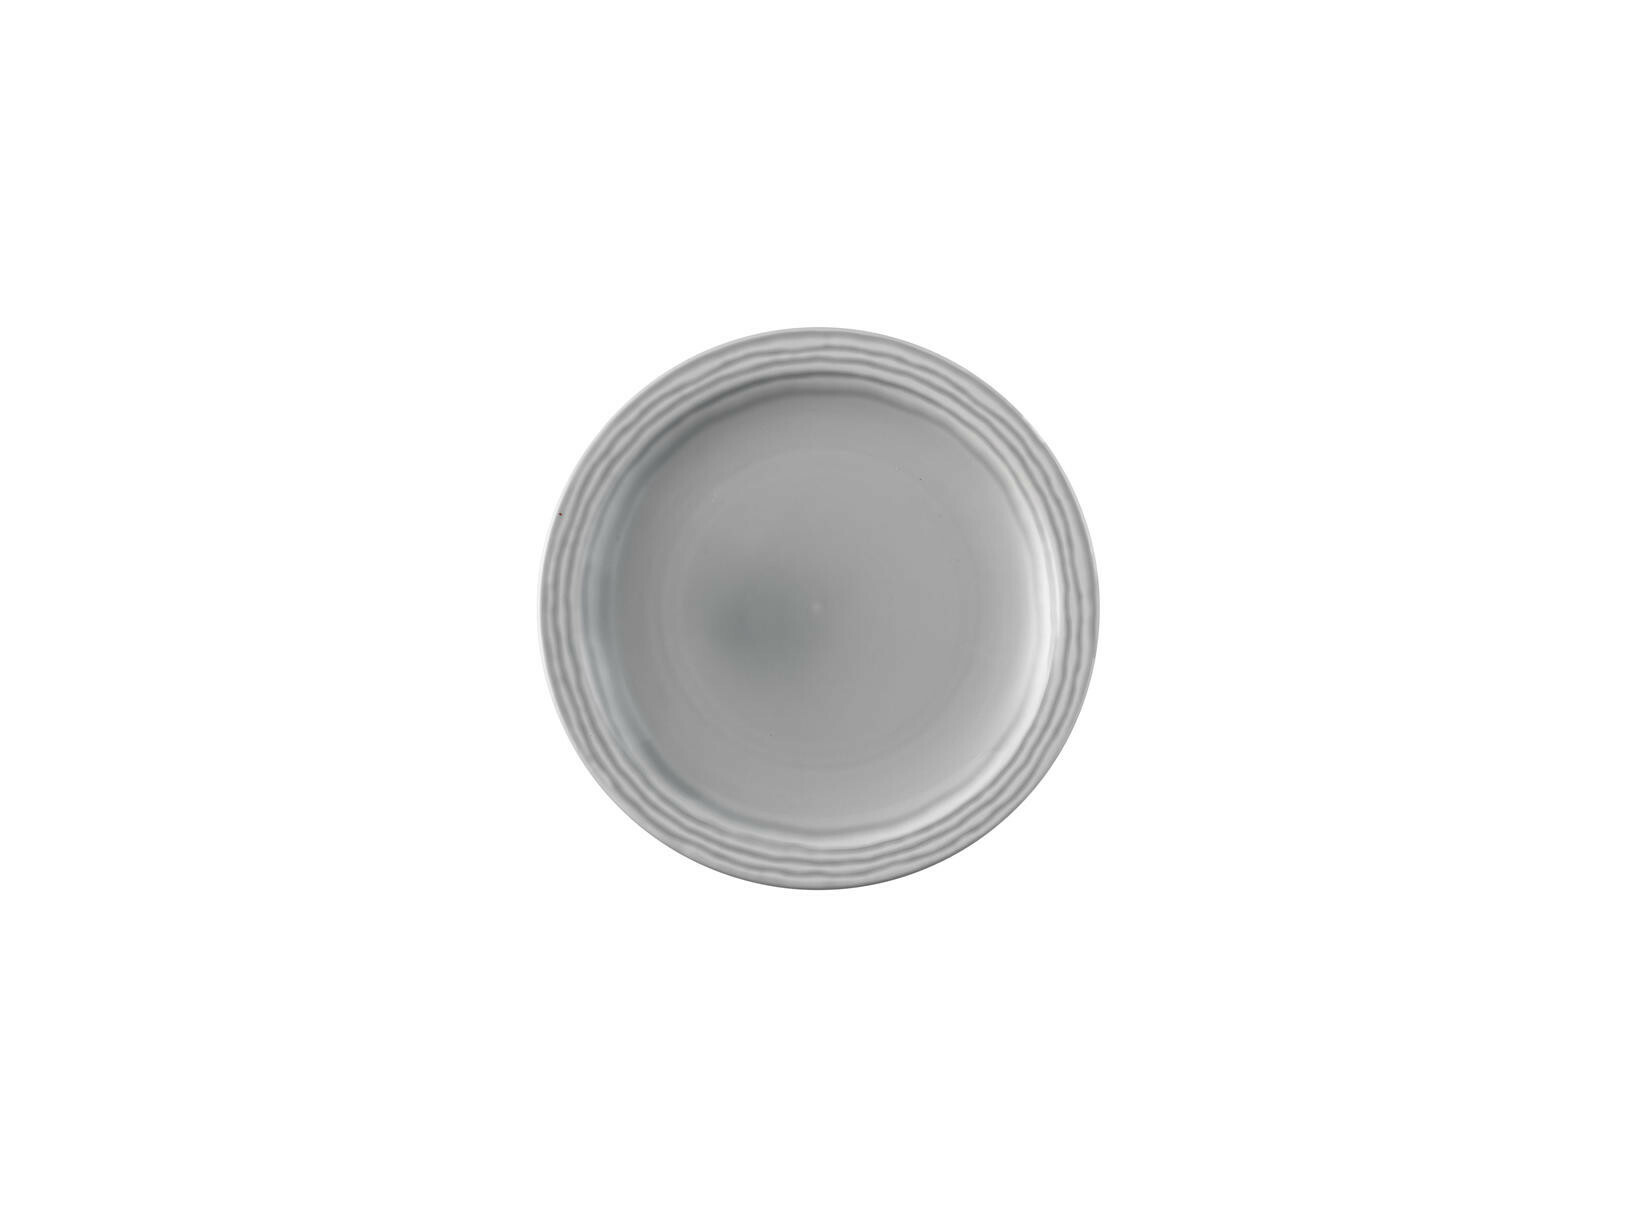 Dudson Harvest Norse Grey bord smalle rand 25,4 cm